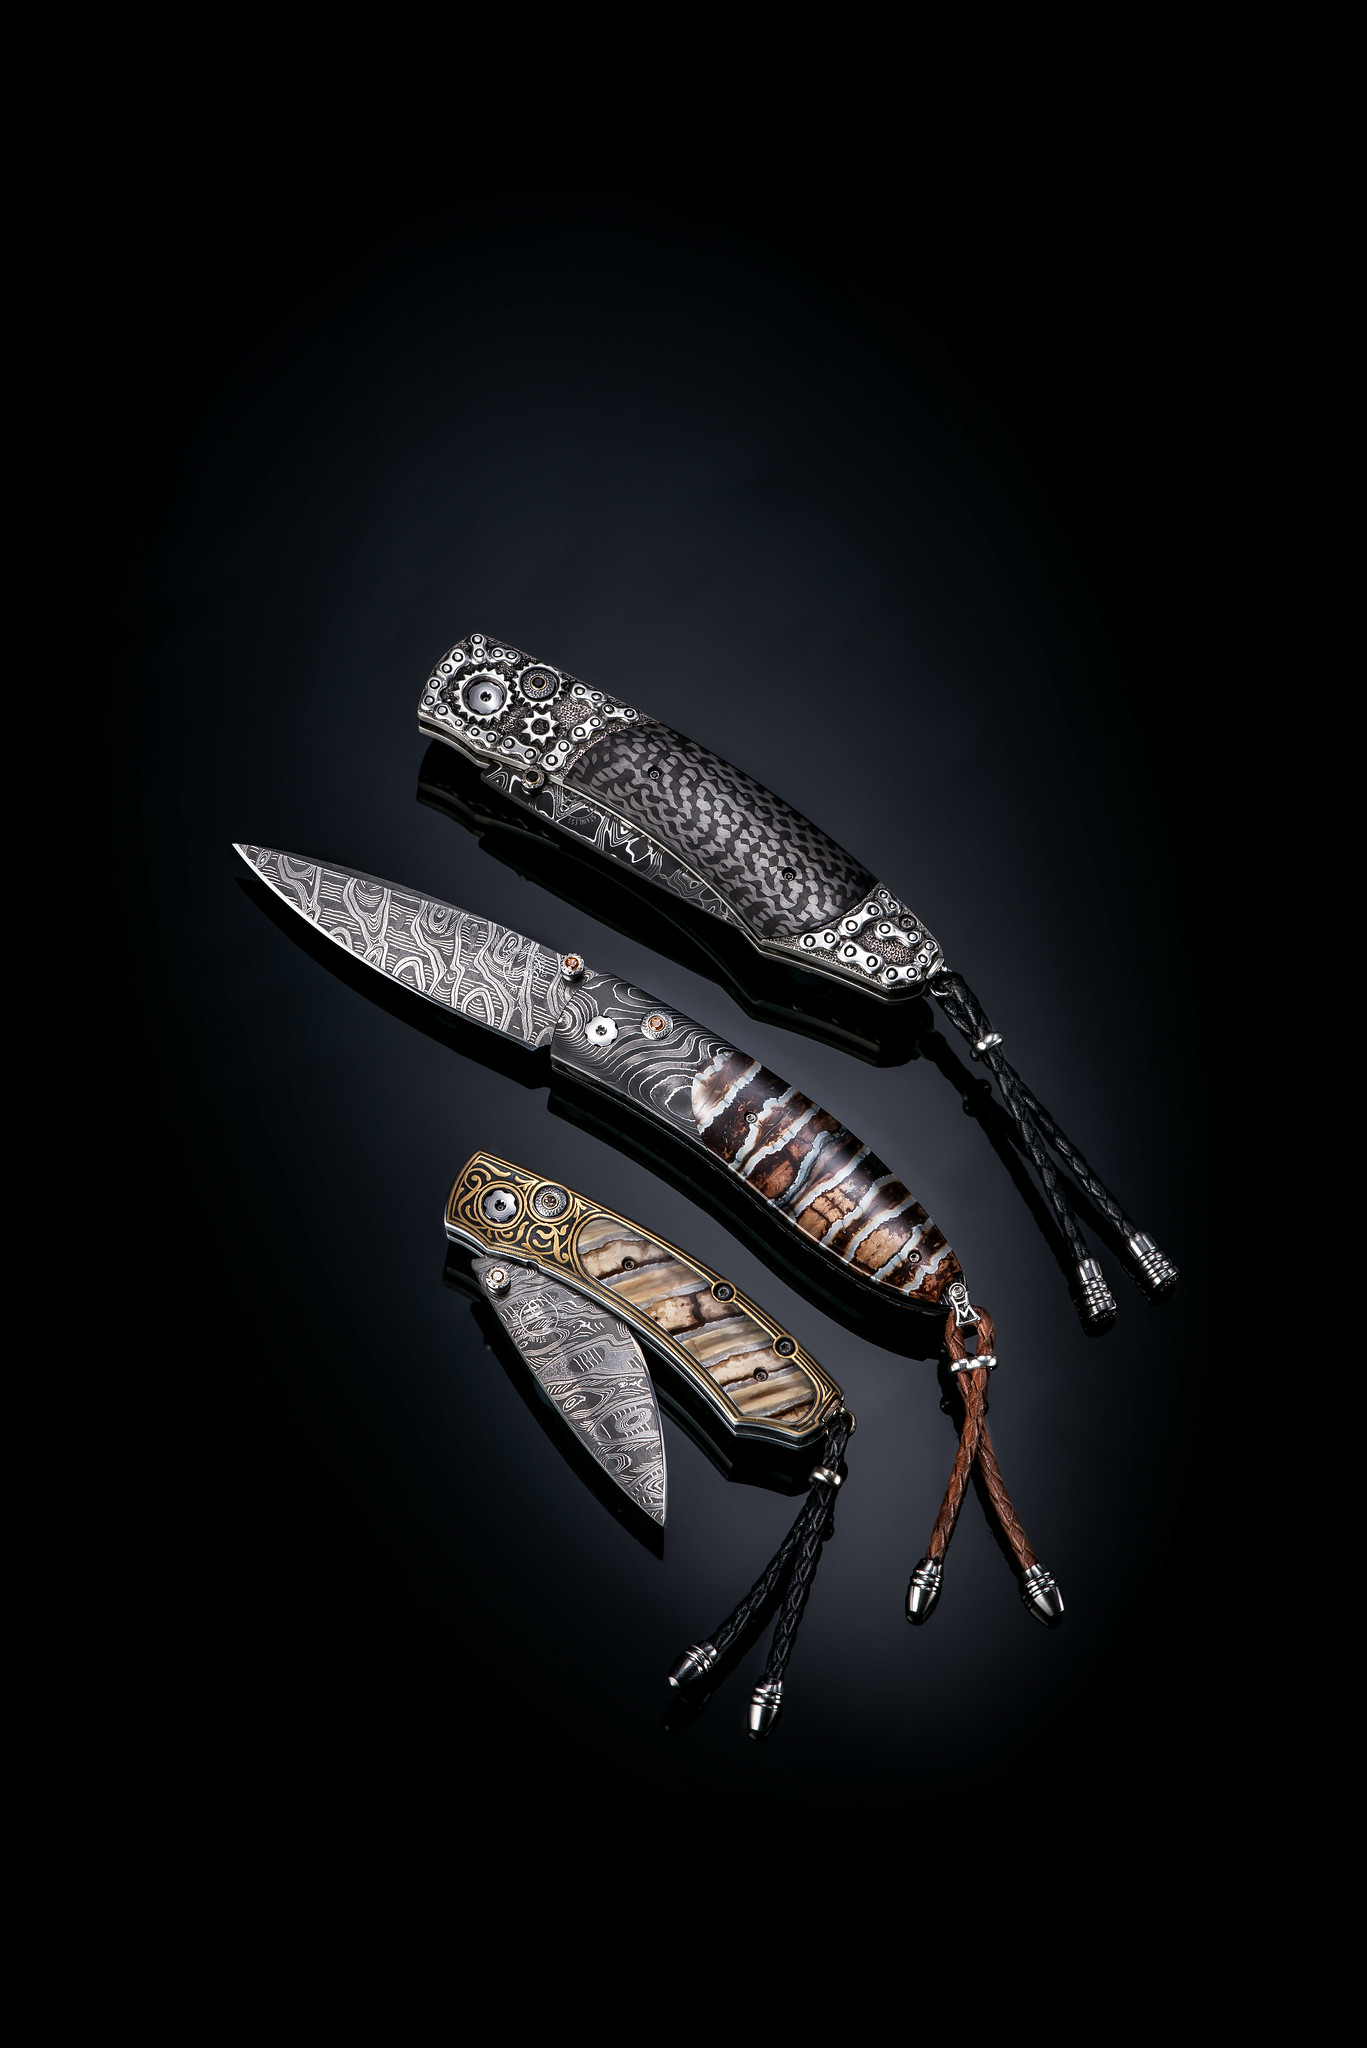 Knives as Art: Pocket Knife Accessories